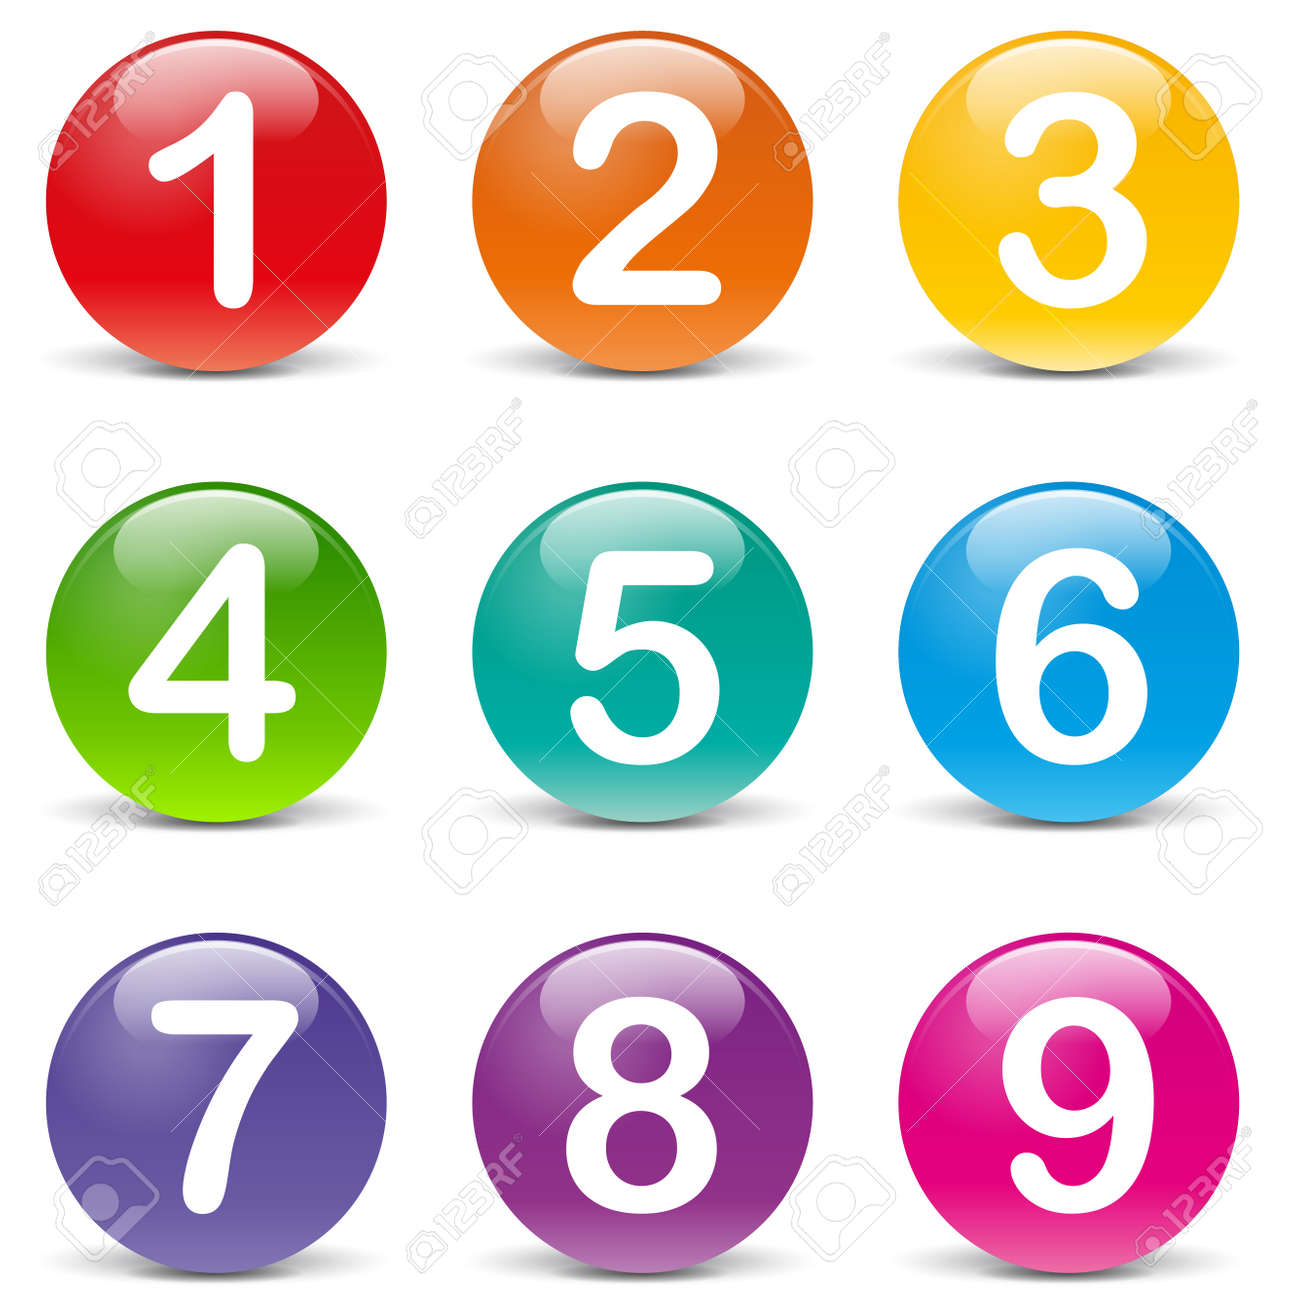 Vector illustration of colored numbers icons on white background - 27835194